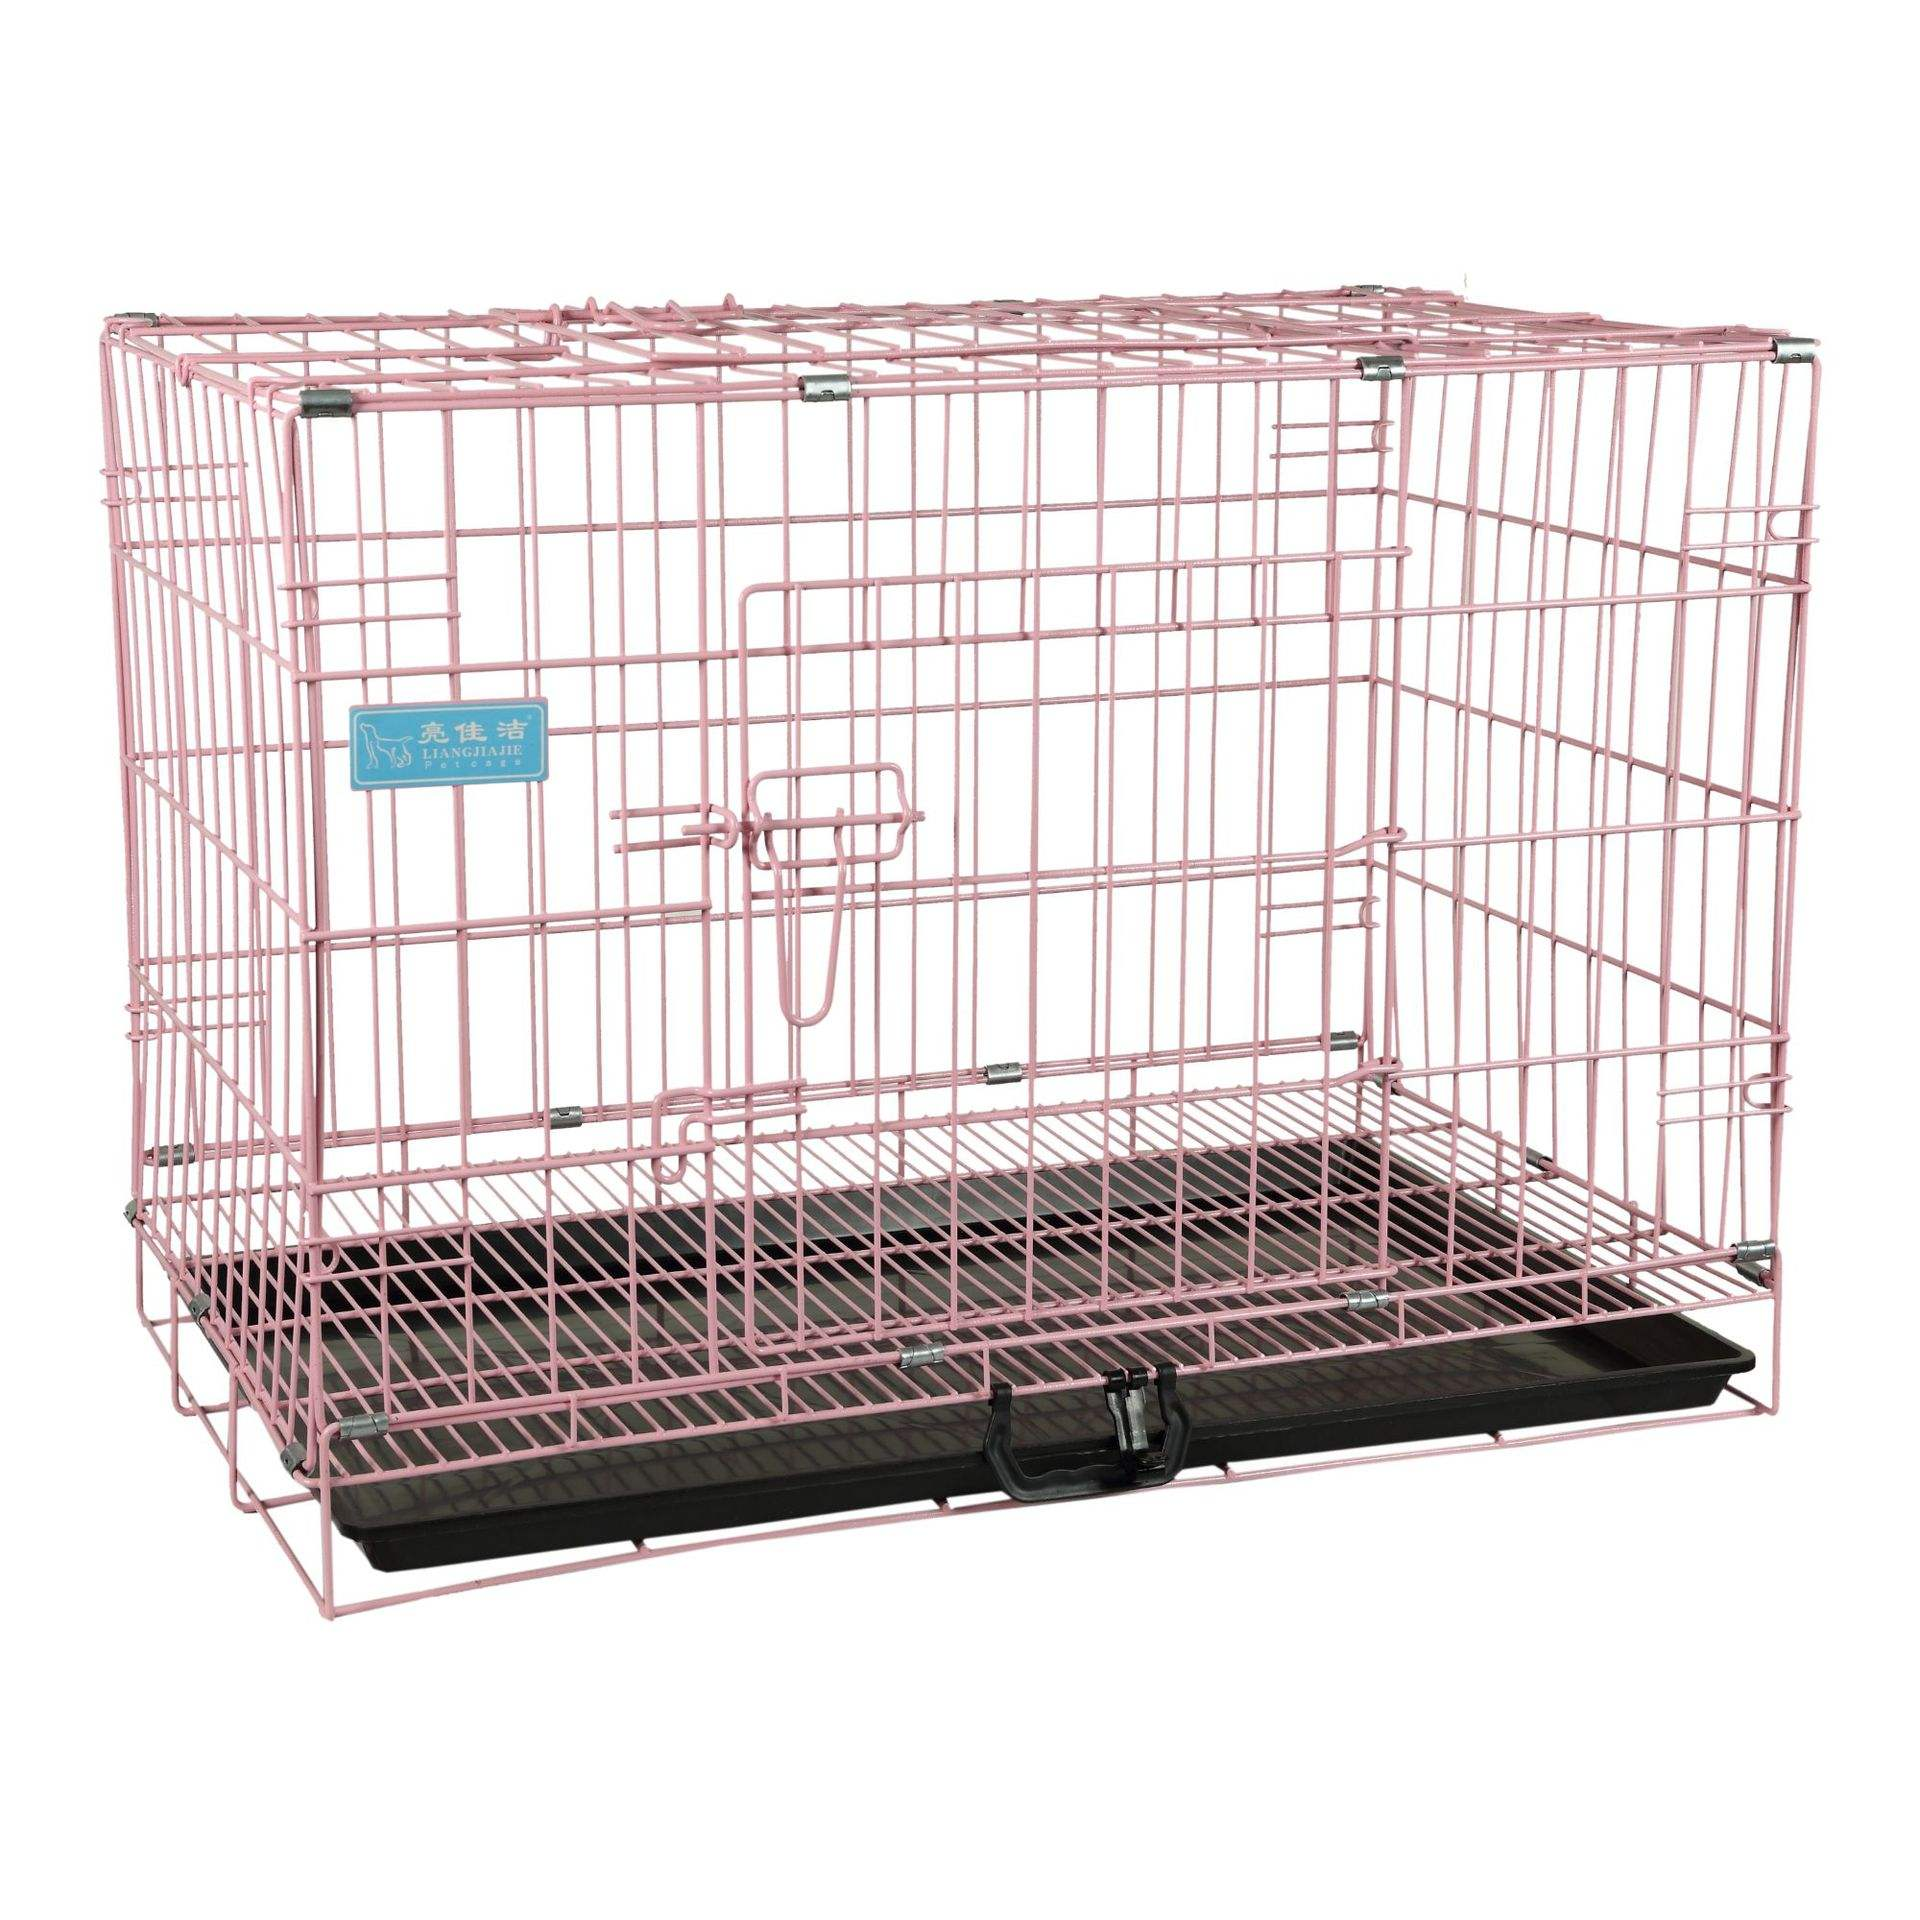 Good-selling metal wire dog cages in pet shops have ABS trays